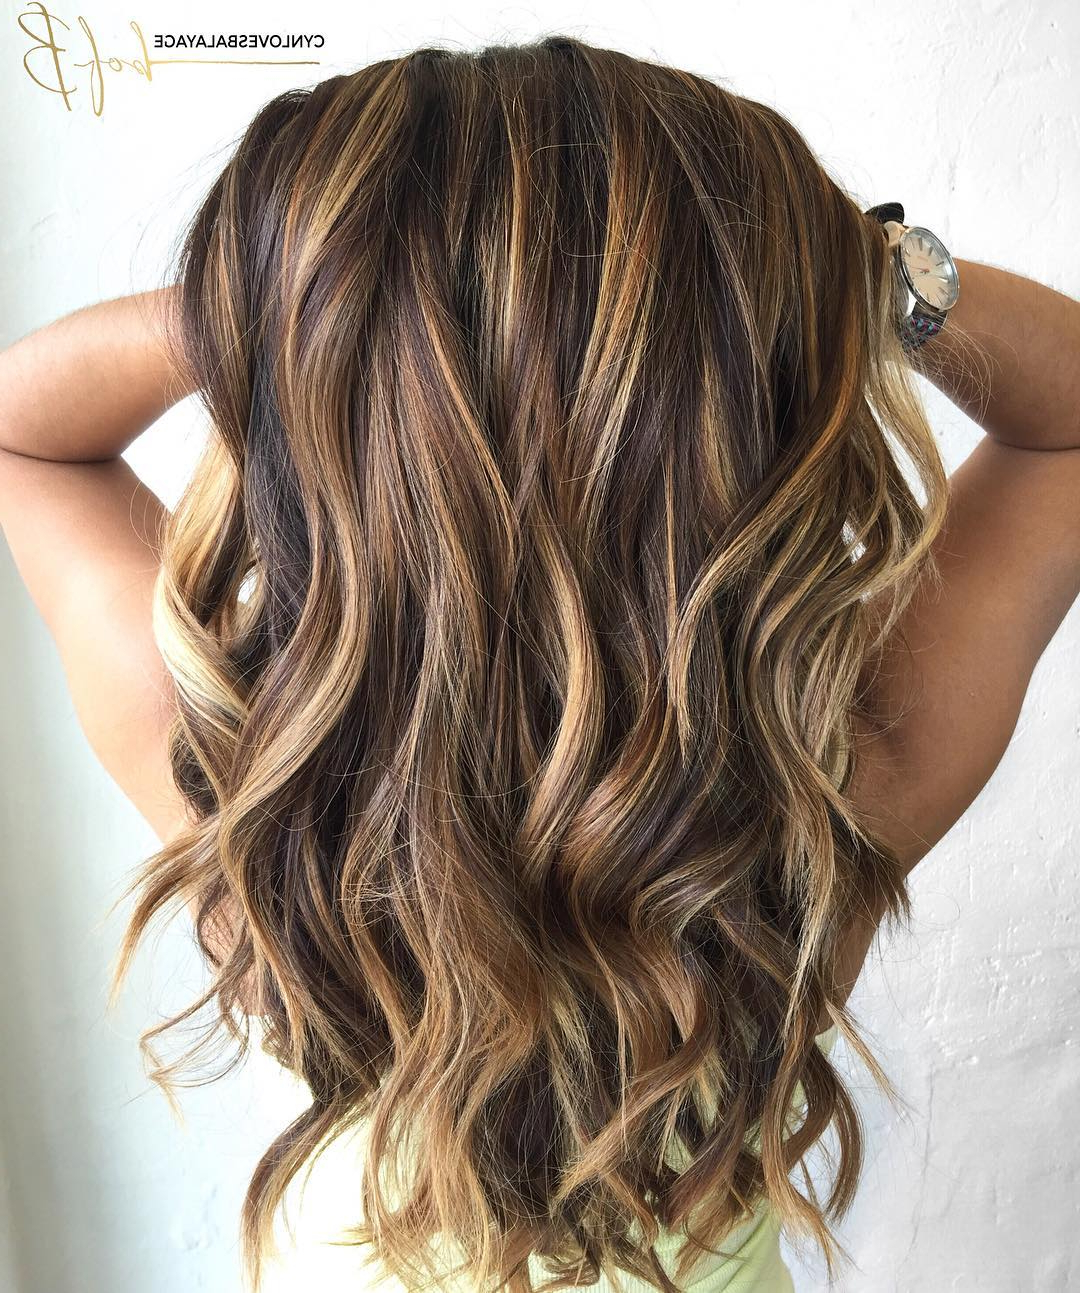 Best And Newest Long Waves Hairstyles With Subtle Highlights Inside 60 Looks With Caramel Highlights On Brown And Dark Brown Hair (View 2 of 20)